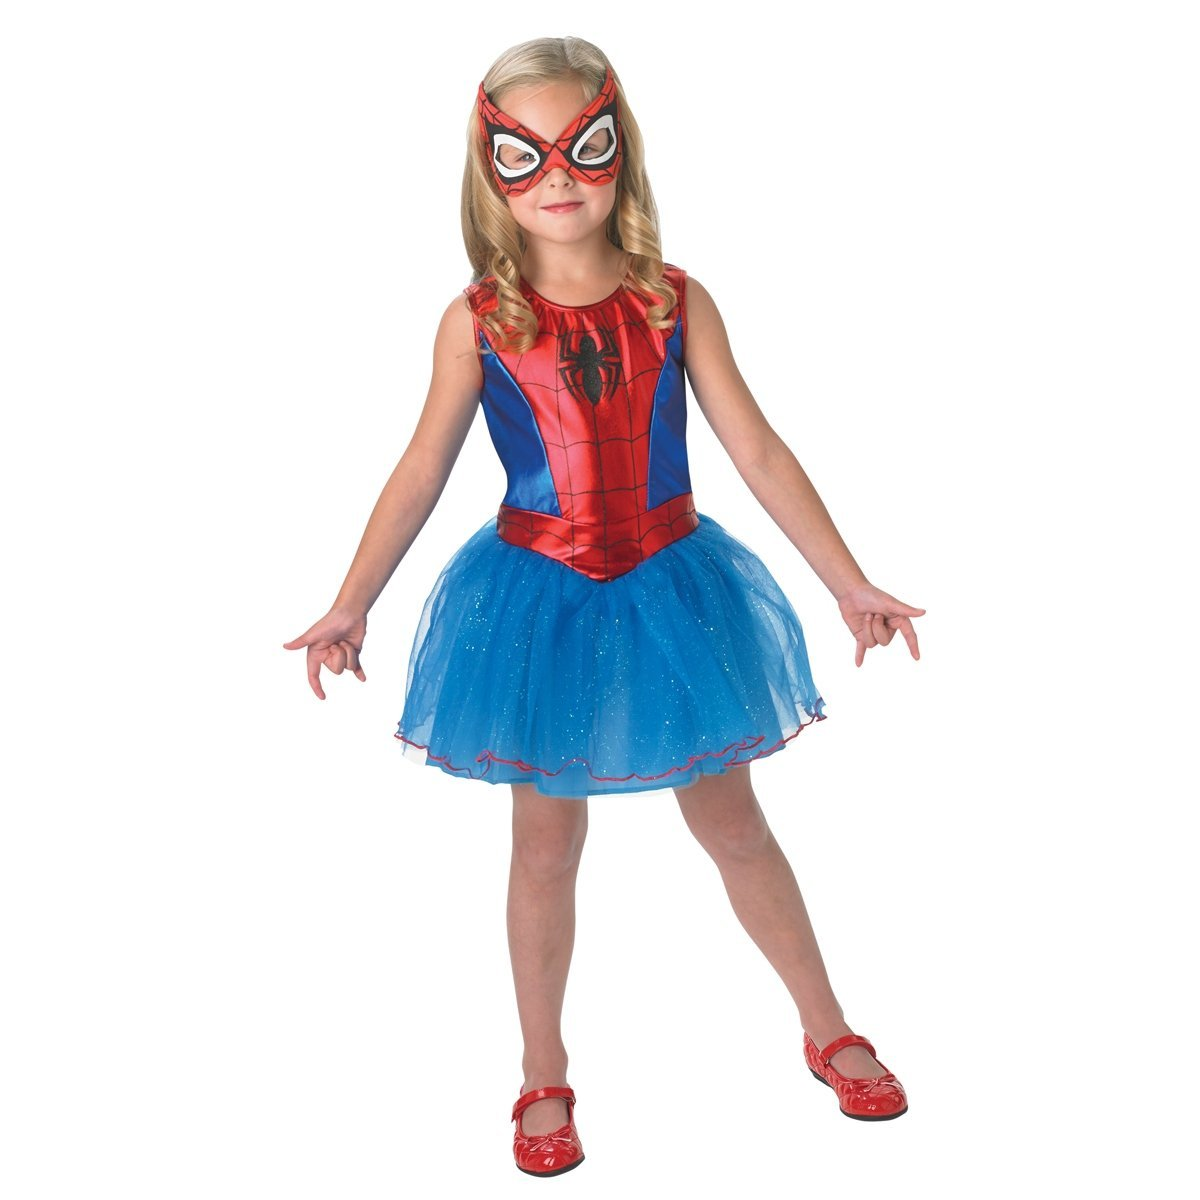 Spidergirl costume 888884